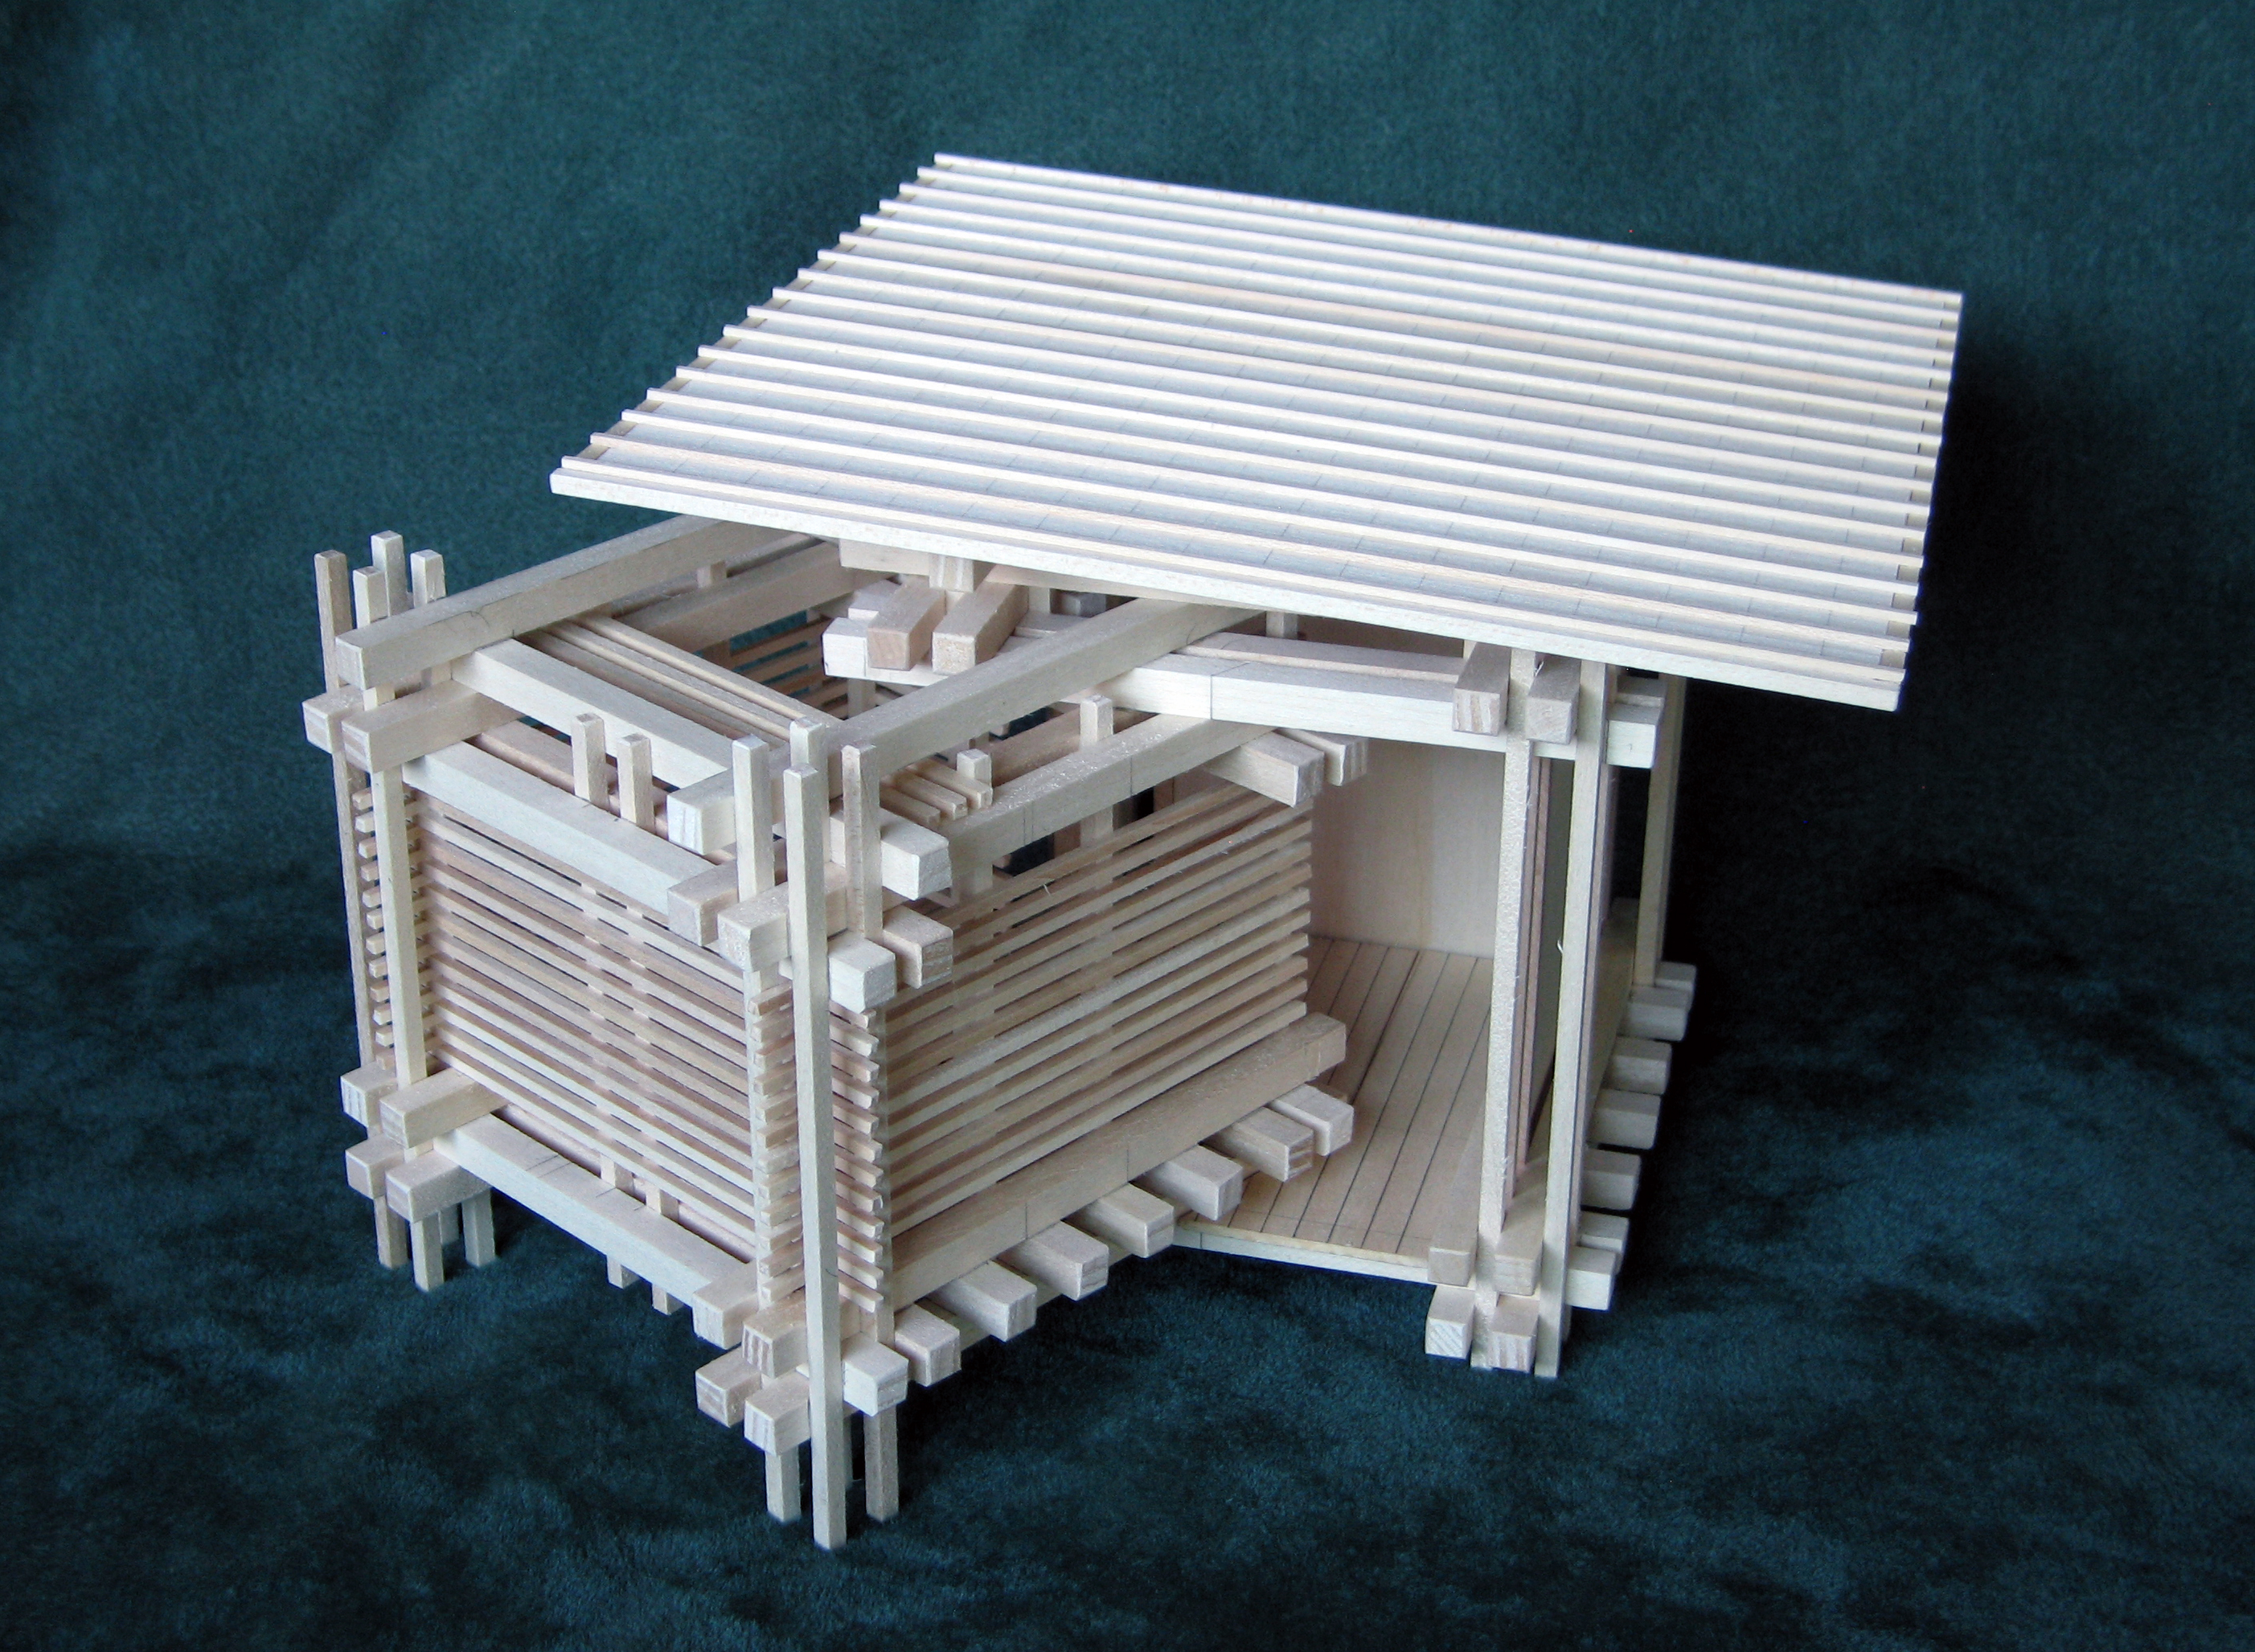 Sculpture Architectural Model LOVERS